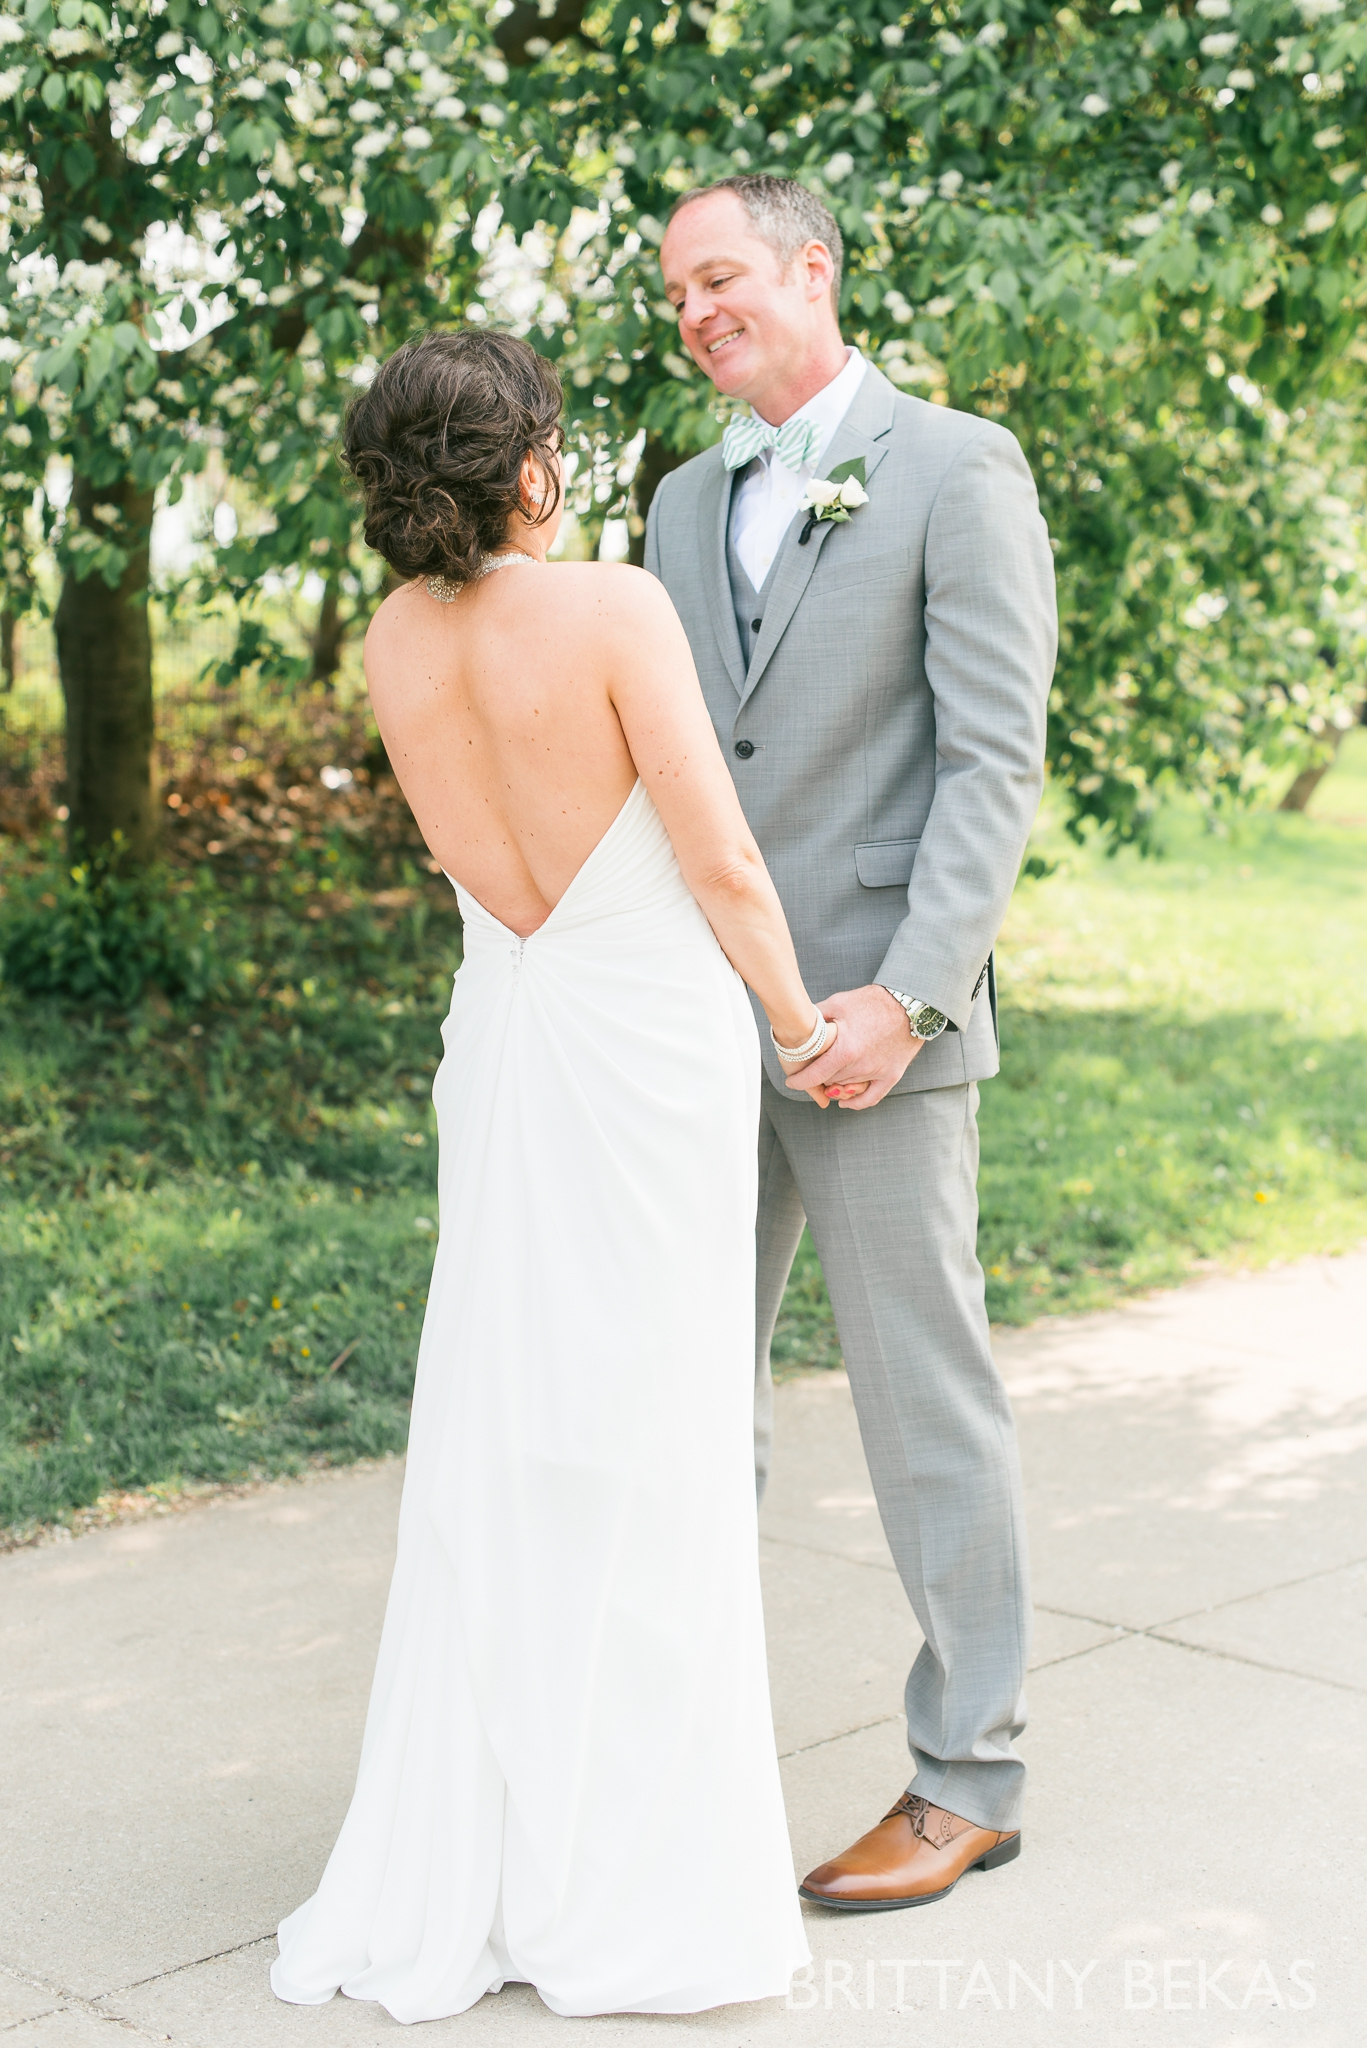 Chicago Wedding - Ravenswood Event Center Wedding Photos_0061